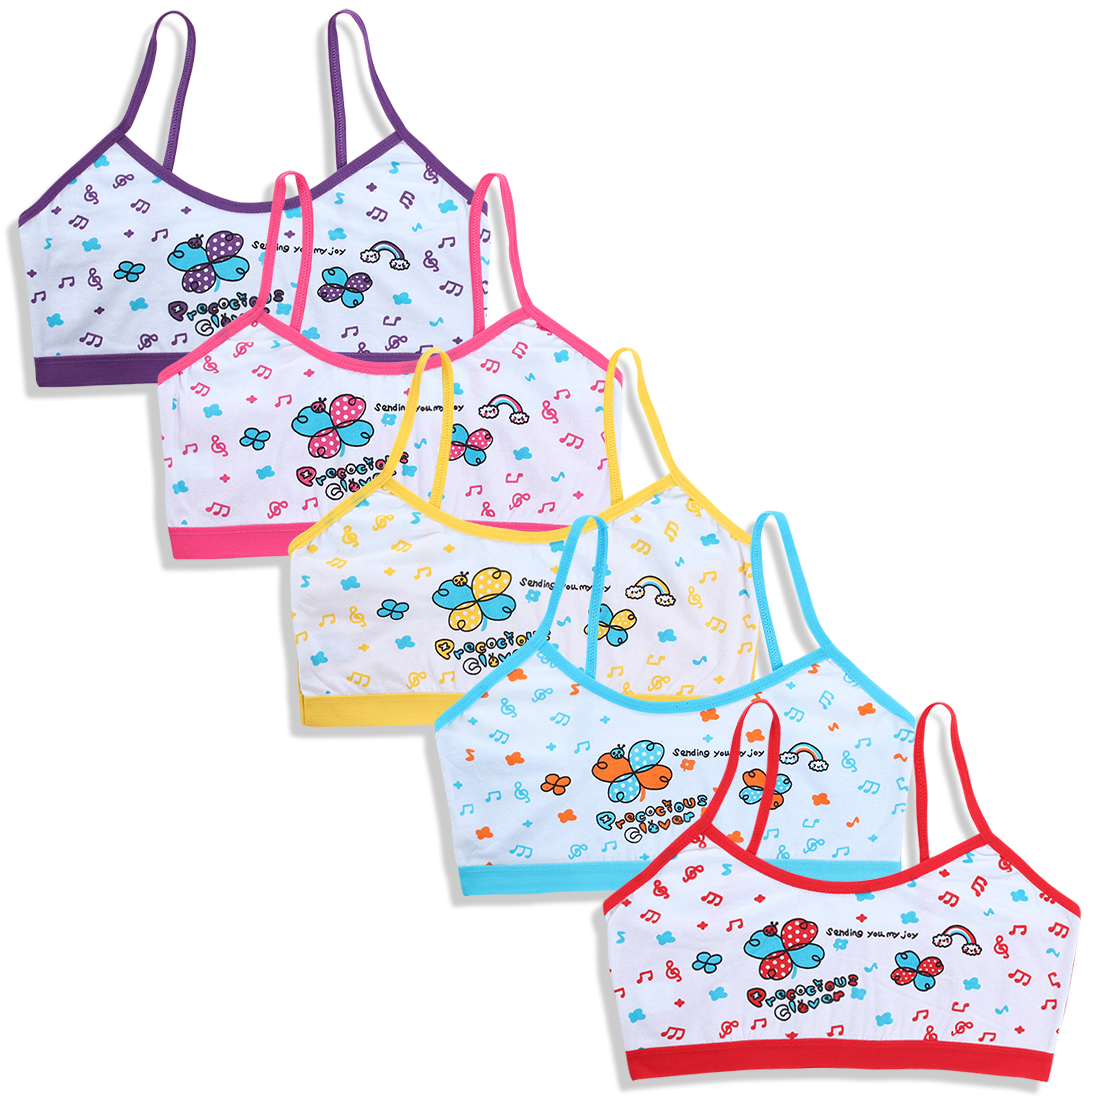 Girls Bra Underwear Cotton Colorful Baby Girl Kids Children Cartoon 6-14Y Hipster Sport Teens Teenage Young Camisole Vest